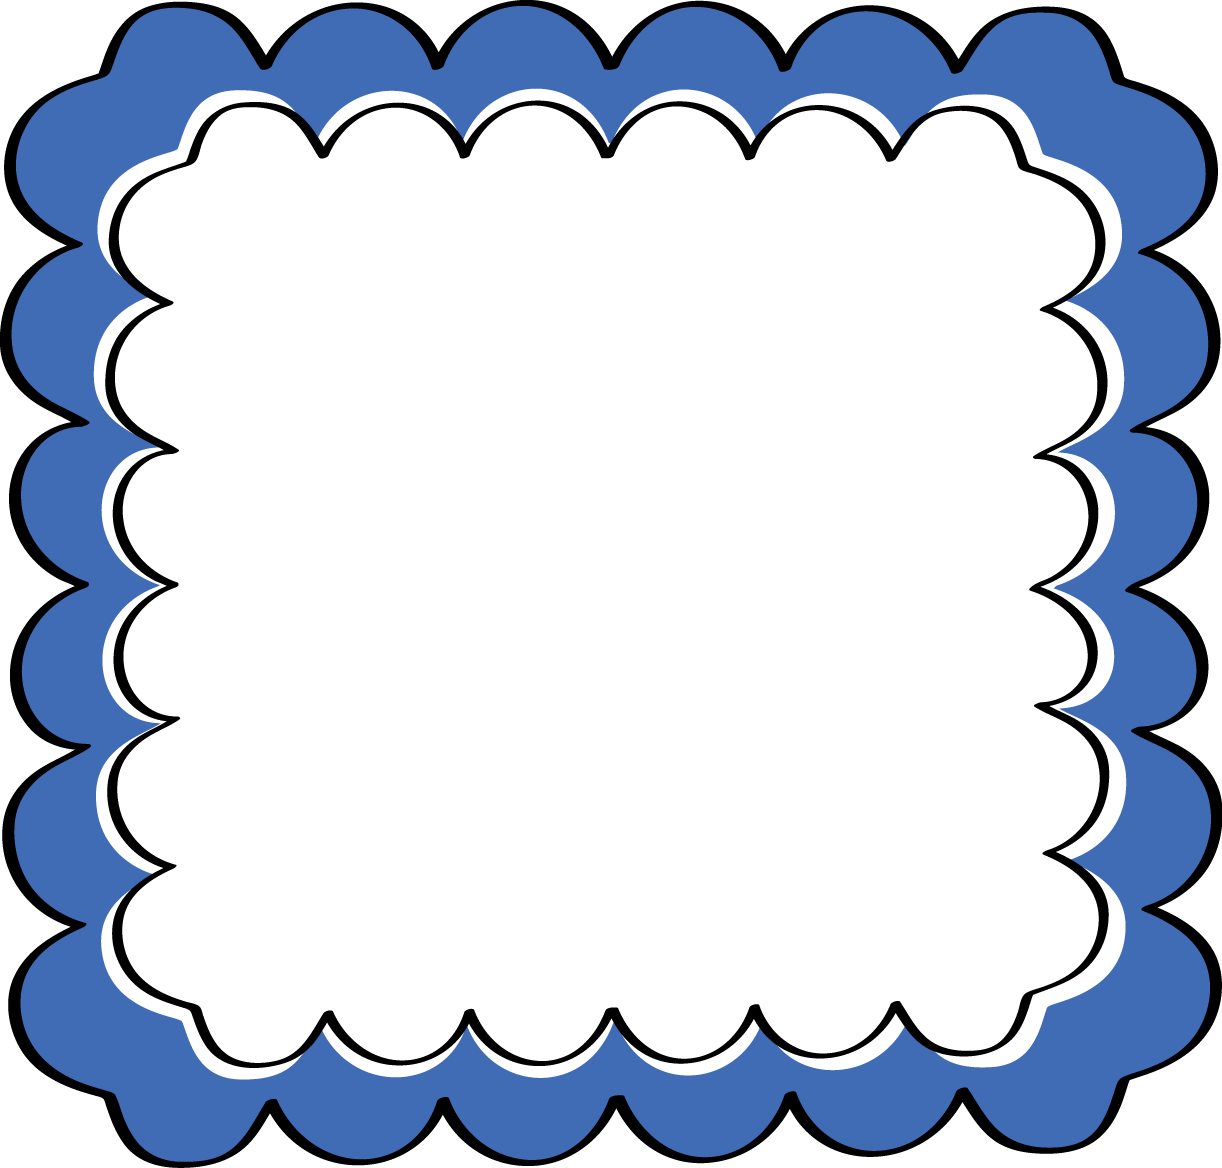 Frame clip art black and white clipart panda free clipart images - Blue 20border 20clipart